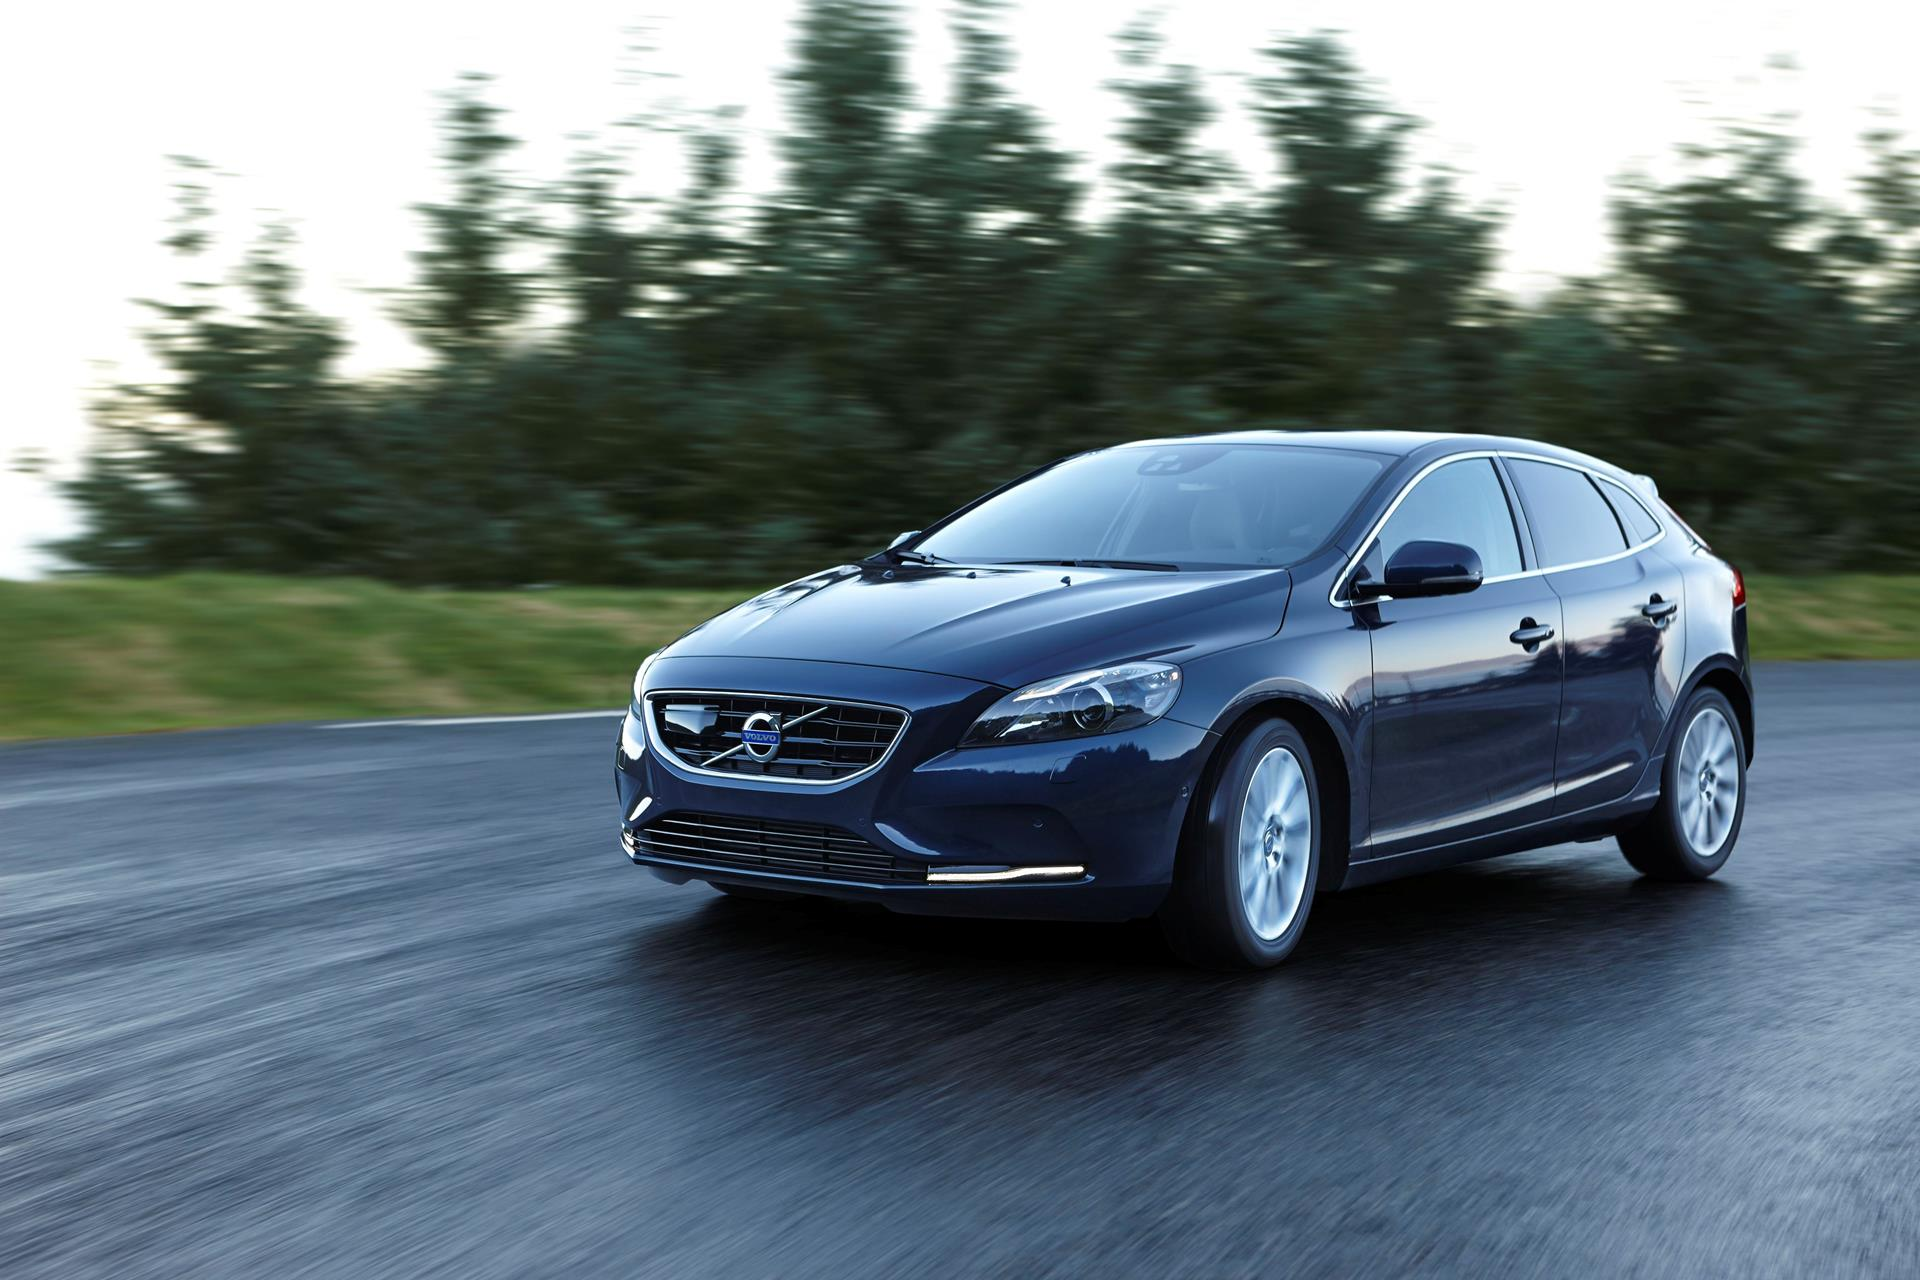 2015 Volvo V40 News and Information | conceptcarz.com